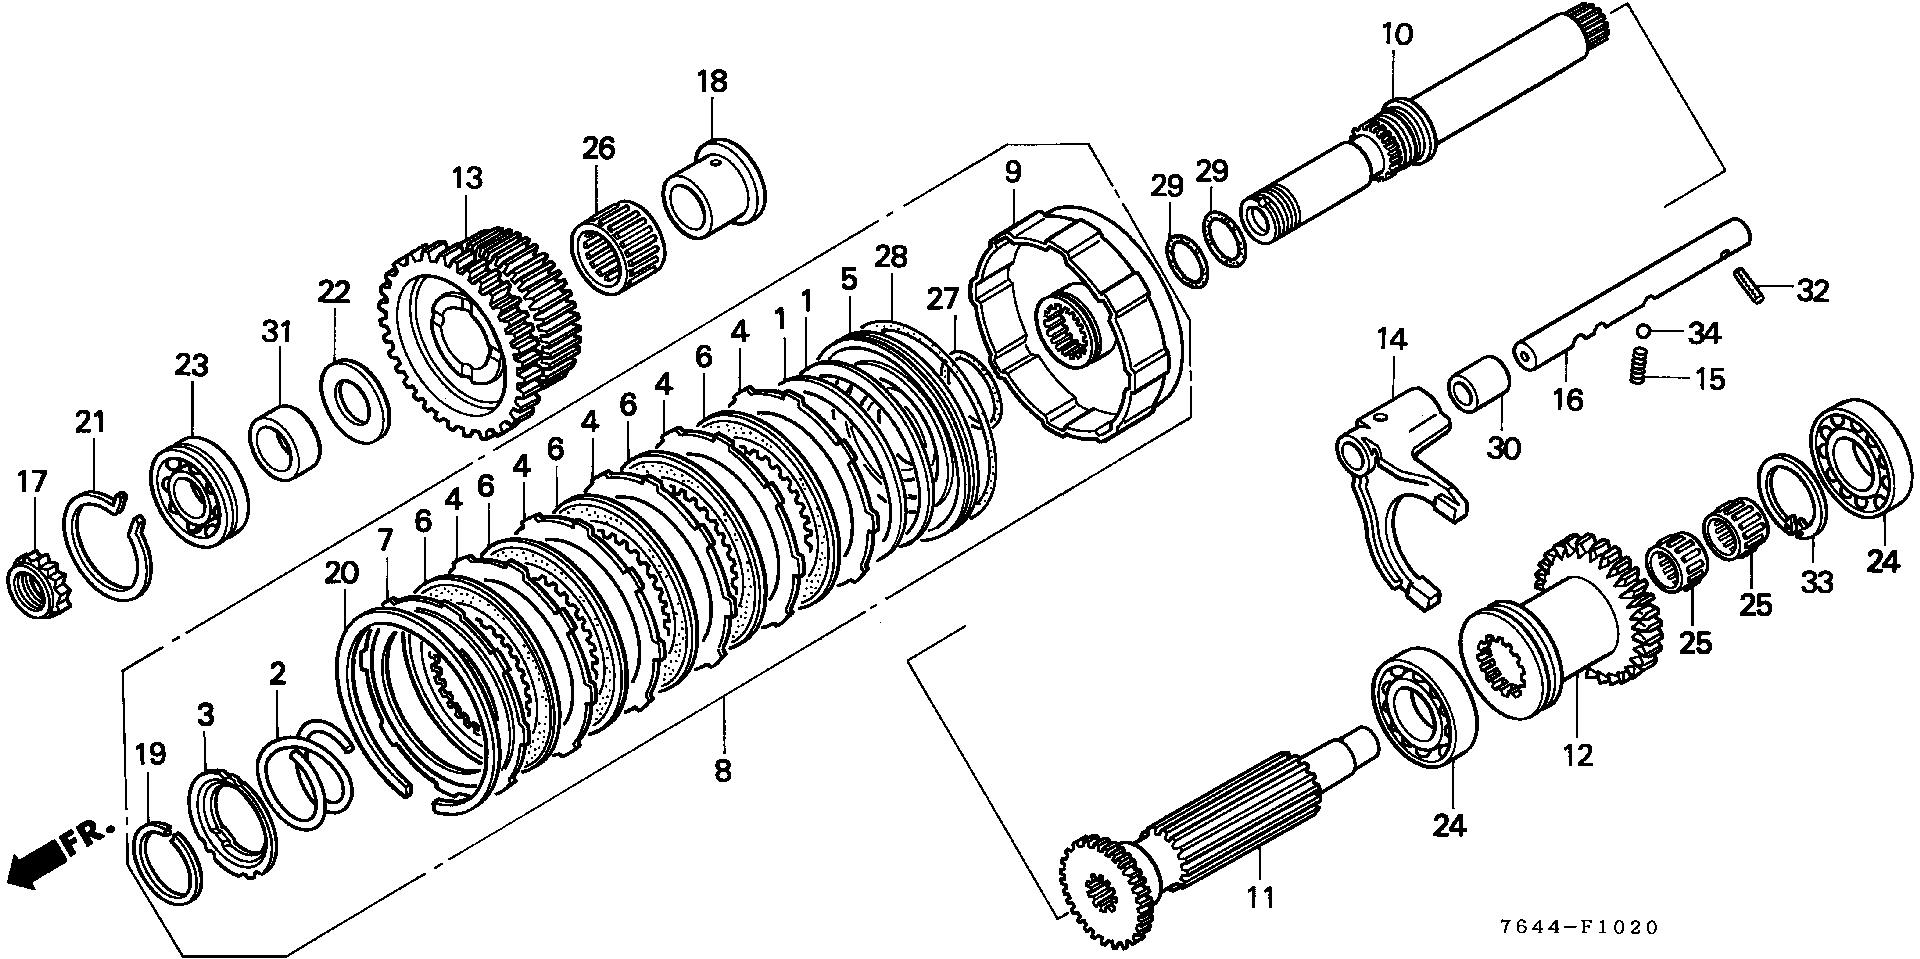 P.T.O. COUNTERSHAFT